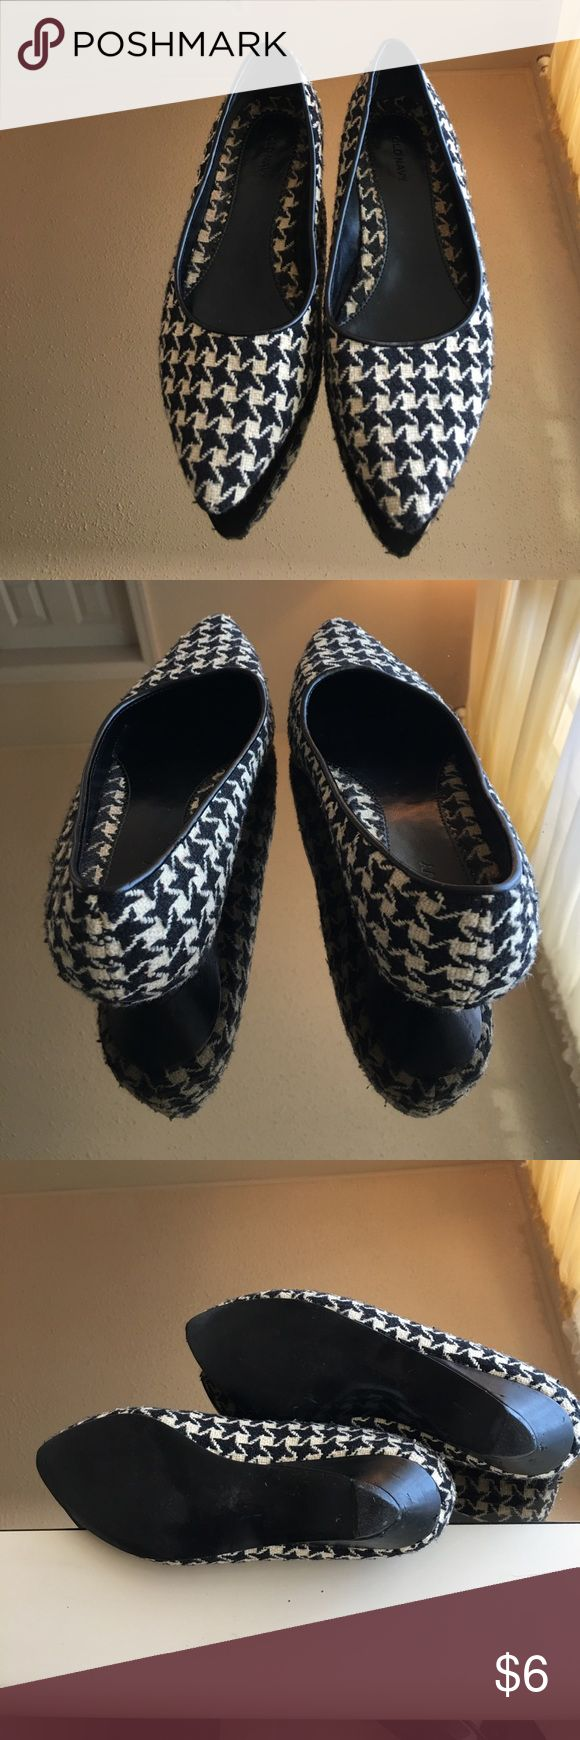 POINTY TOE HOUNDSTOOTH IVORY & BLACK WOOL FLATS 8M OLD NAVY BRAND. REPOSH. I LOVE THE SHOES AND THEY FIT LIKE AN 8 BUT I HAVE LONG TOES. HEEL TAP IS A LITTLE WORN. Match the coat perfectly Old Navy Shoes Flats & Loafers